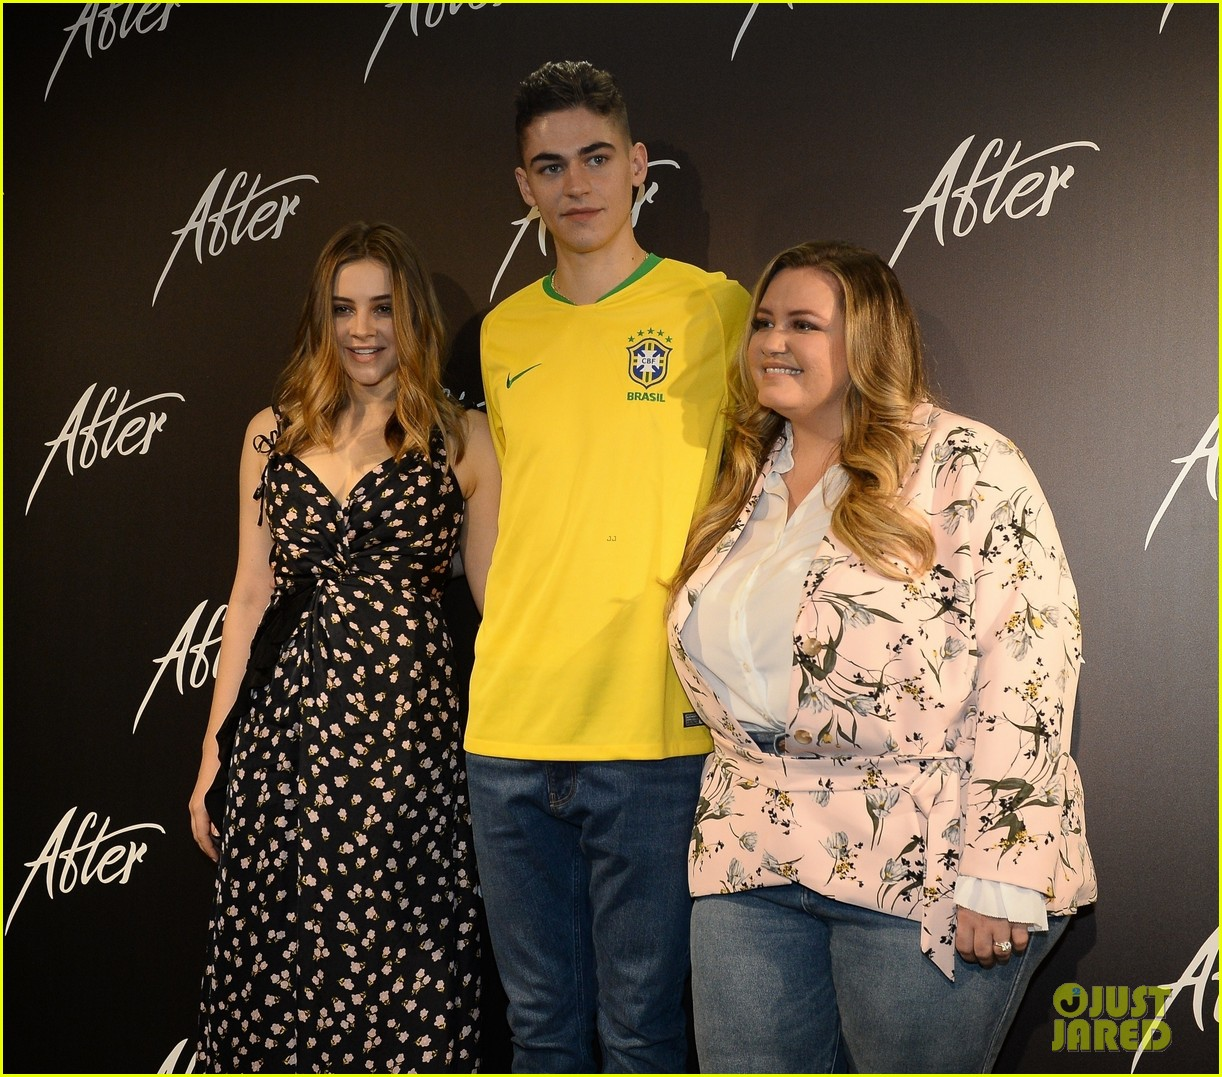 josephine langford hero fiennes tiffin after brazil 03